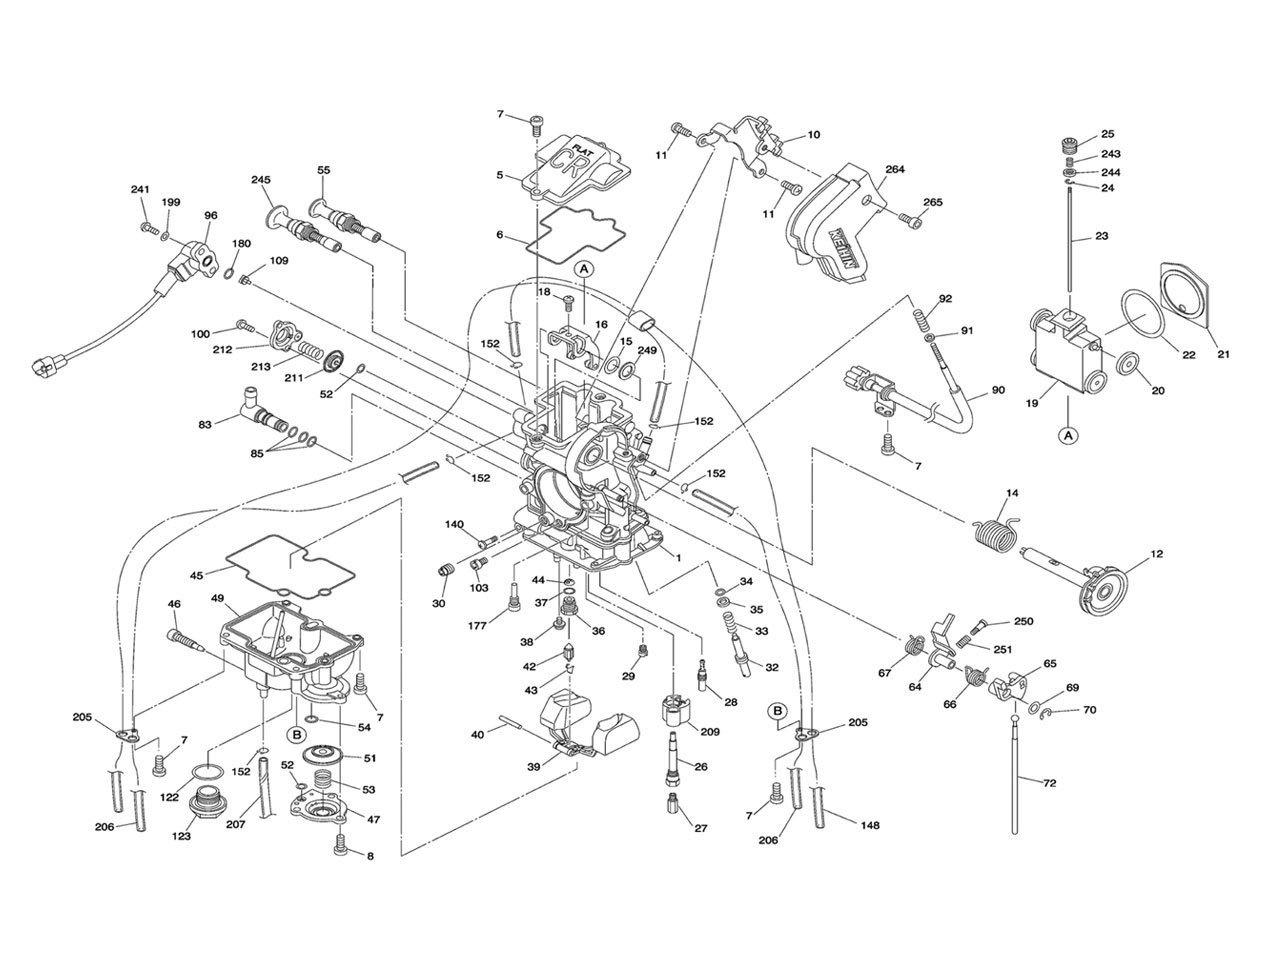 Hilti Parts Manual Within Diagram Wiring And Engine